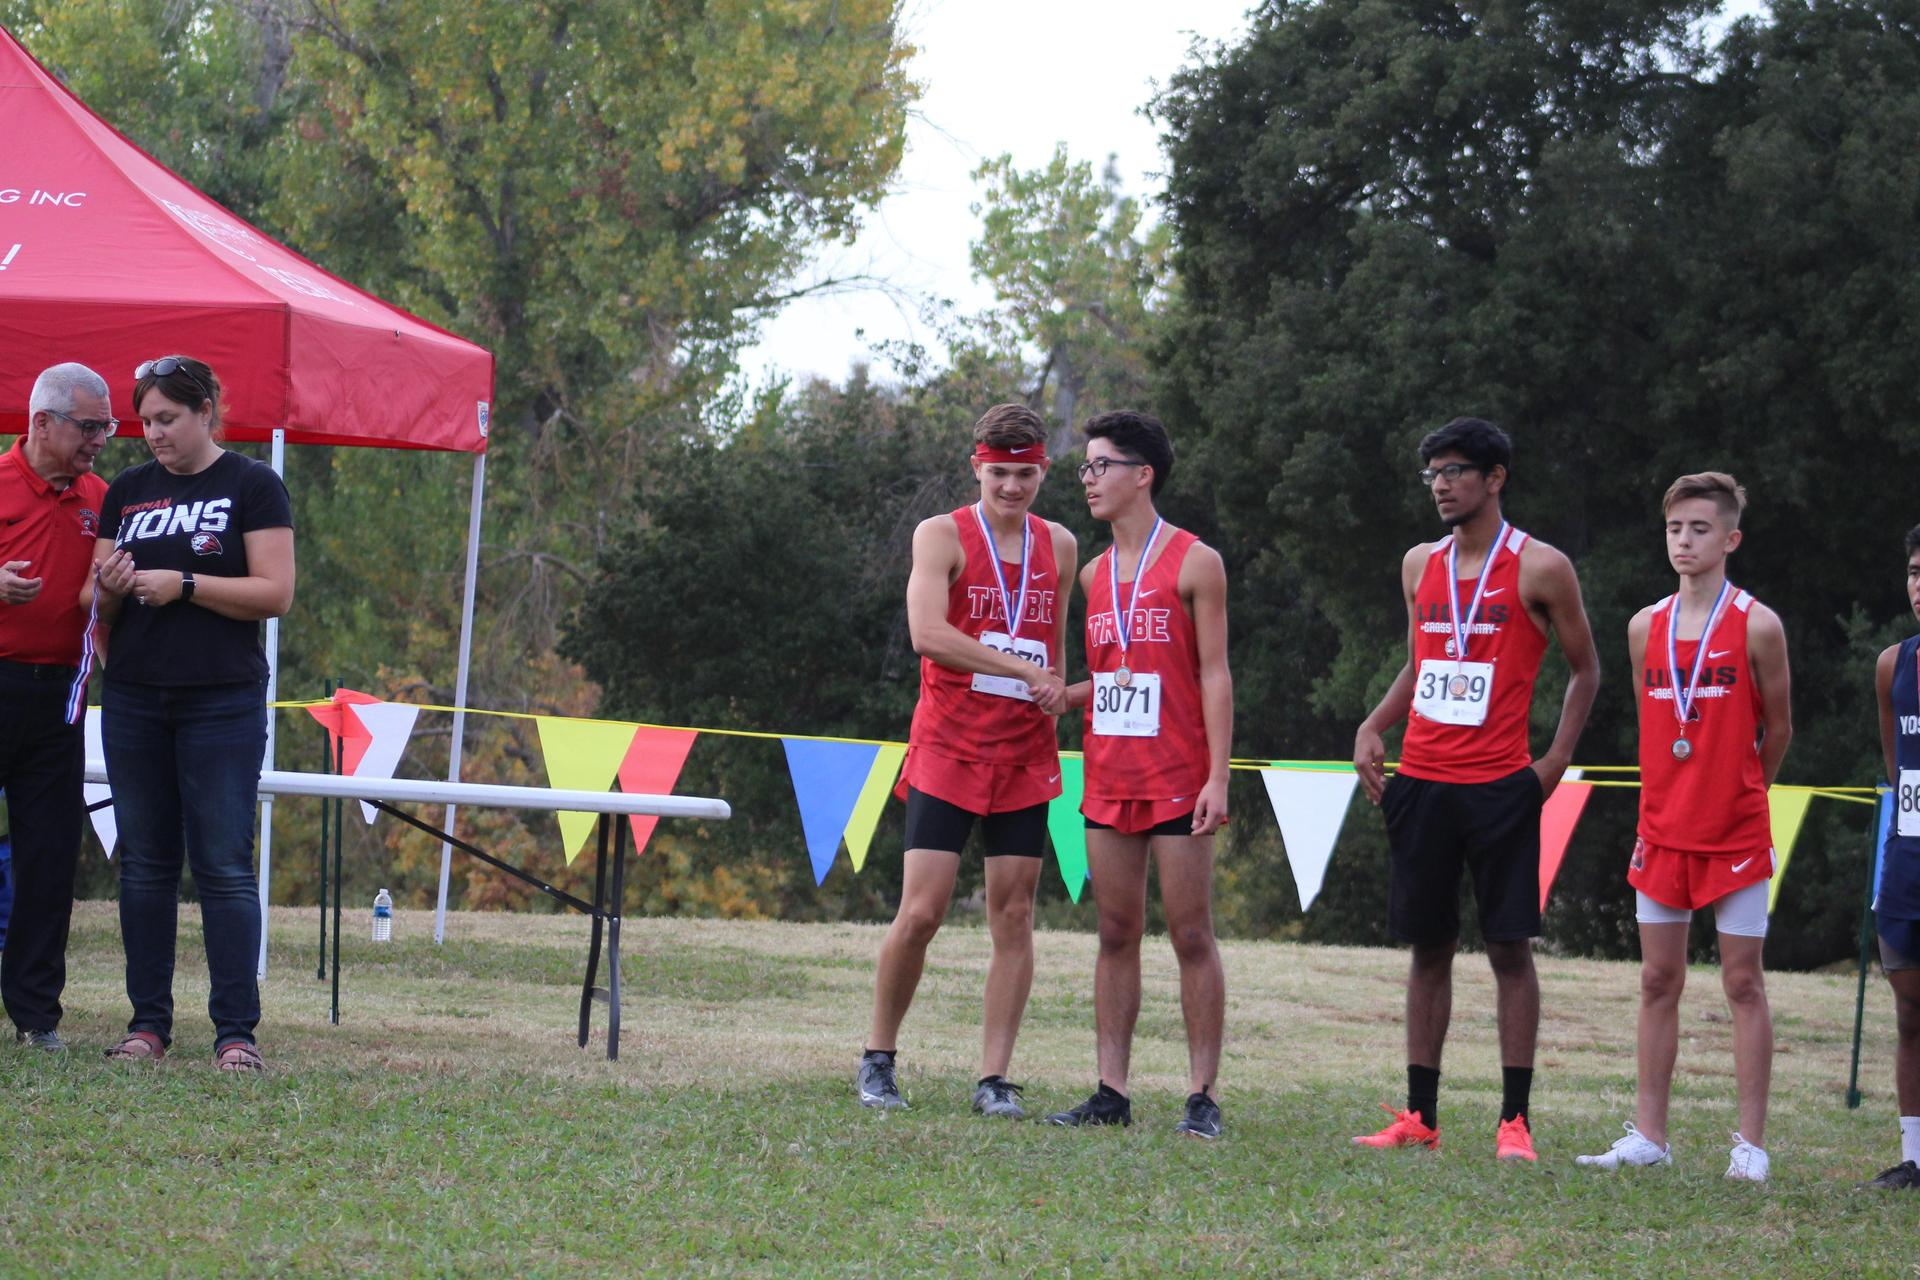 Andrew Castaneda shaking teammate's hand after receiving medal